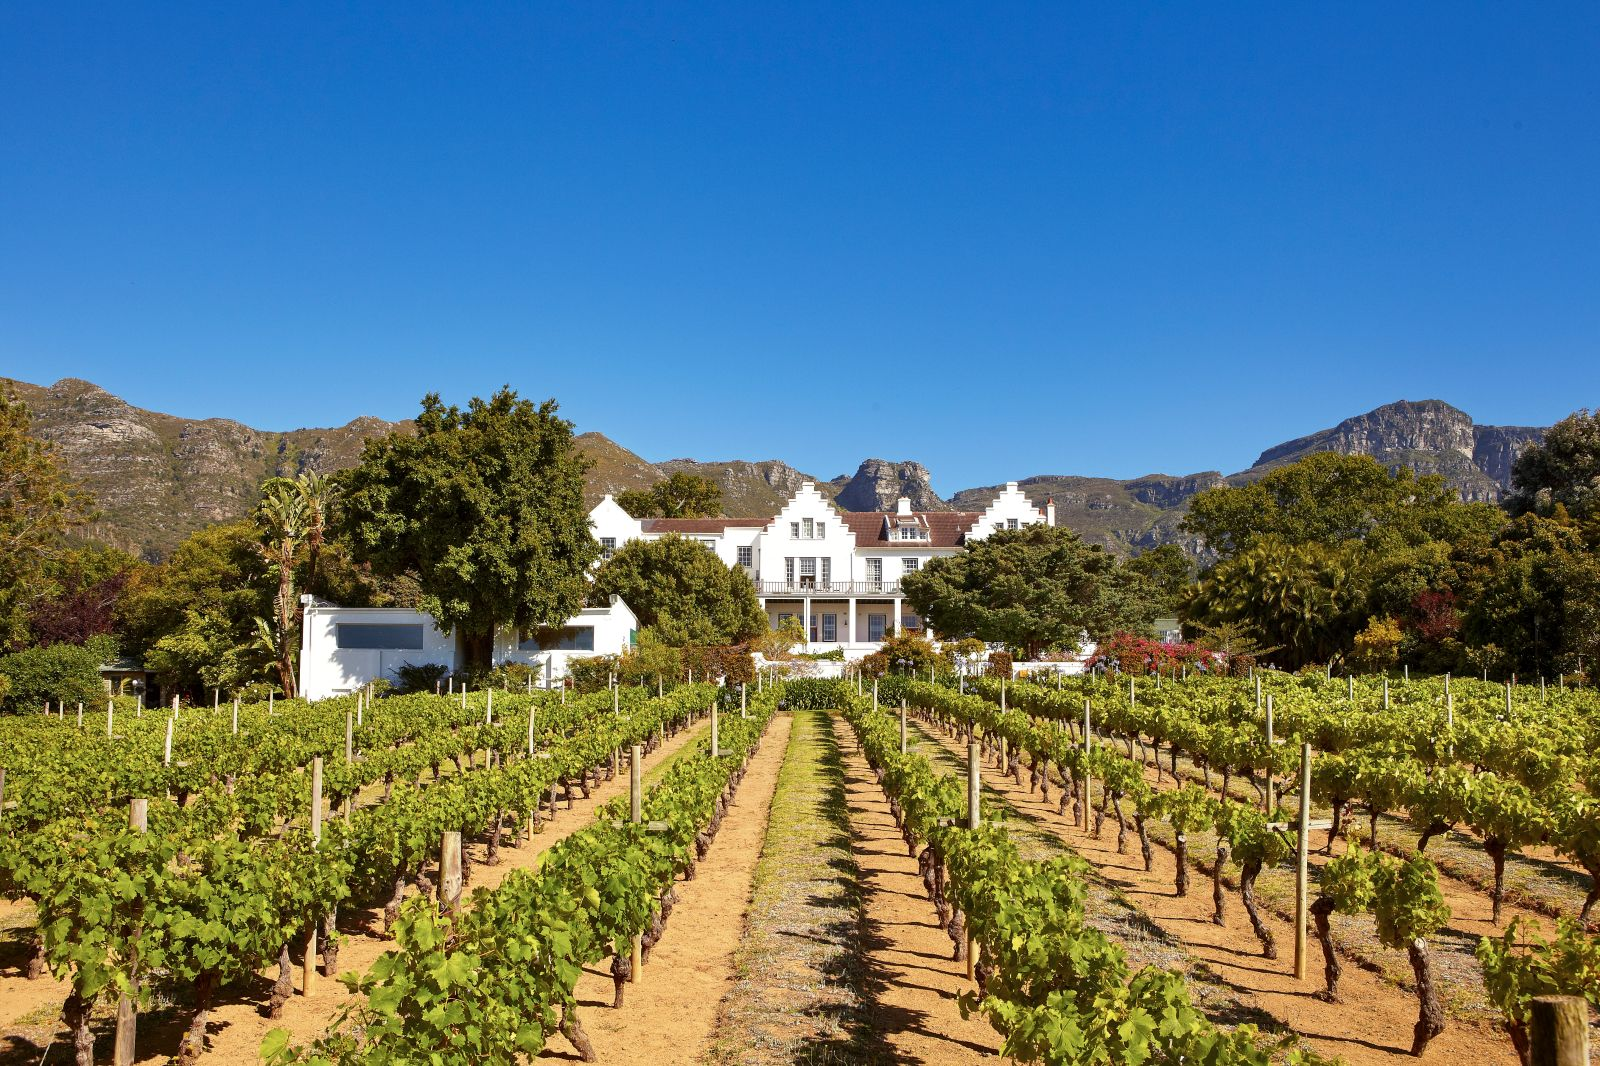 Grounds and vineyards of The Cellars Hohenort in South Africa